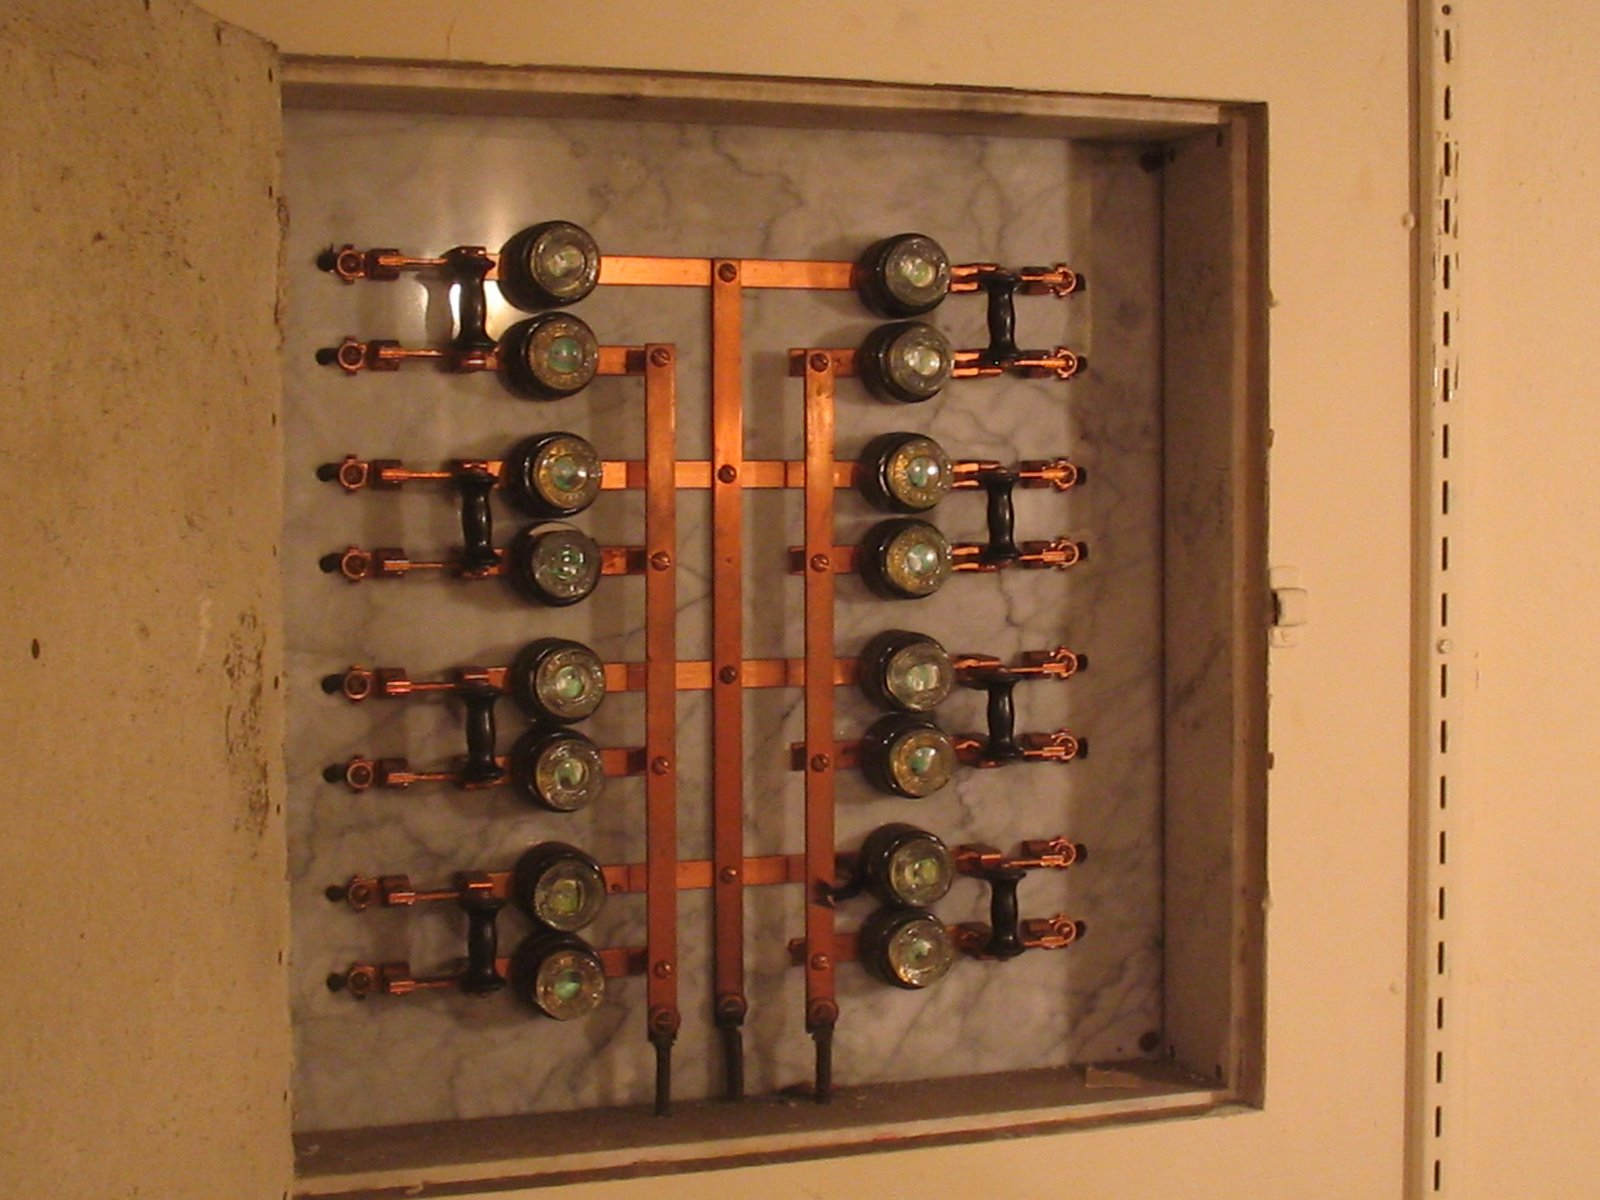 1920s Fuse Box Start Building A Wiring Diagram 100 Amp Panel Original Lectrical From 1914 Kept Within House As Display Rh Reddit Com Old